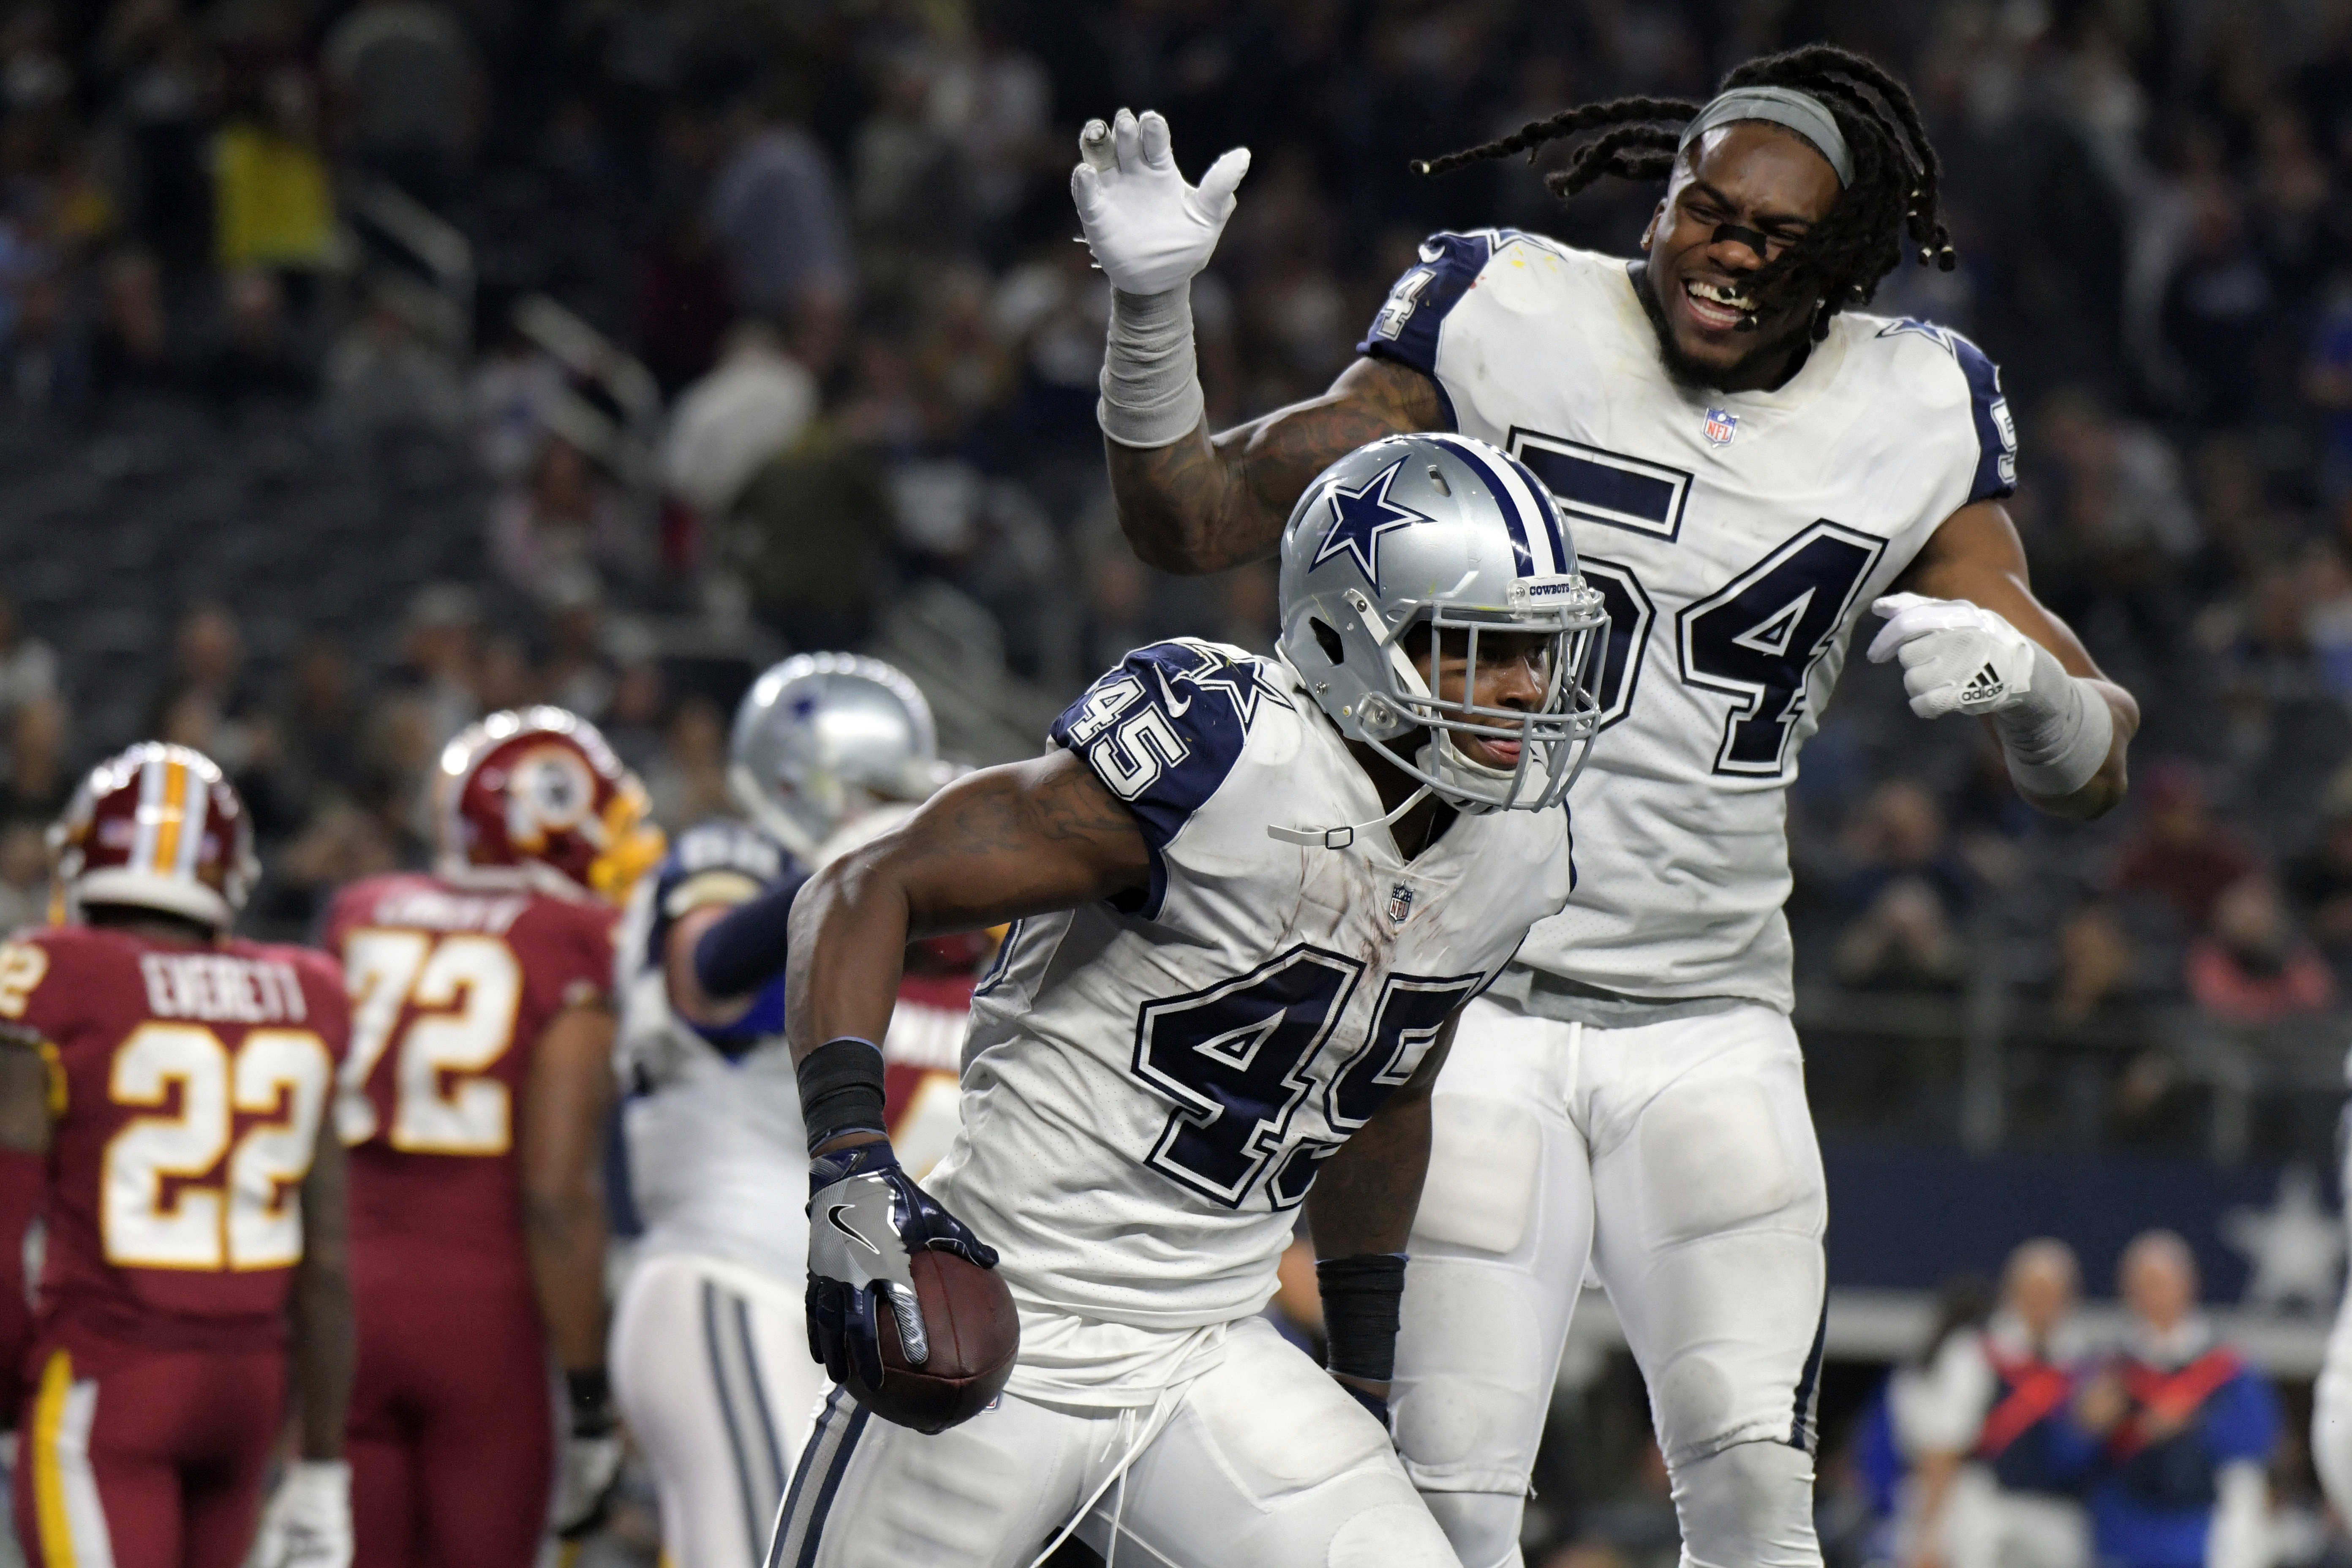 Jaylon Smith will feel the pressure in Cowboys' opening game